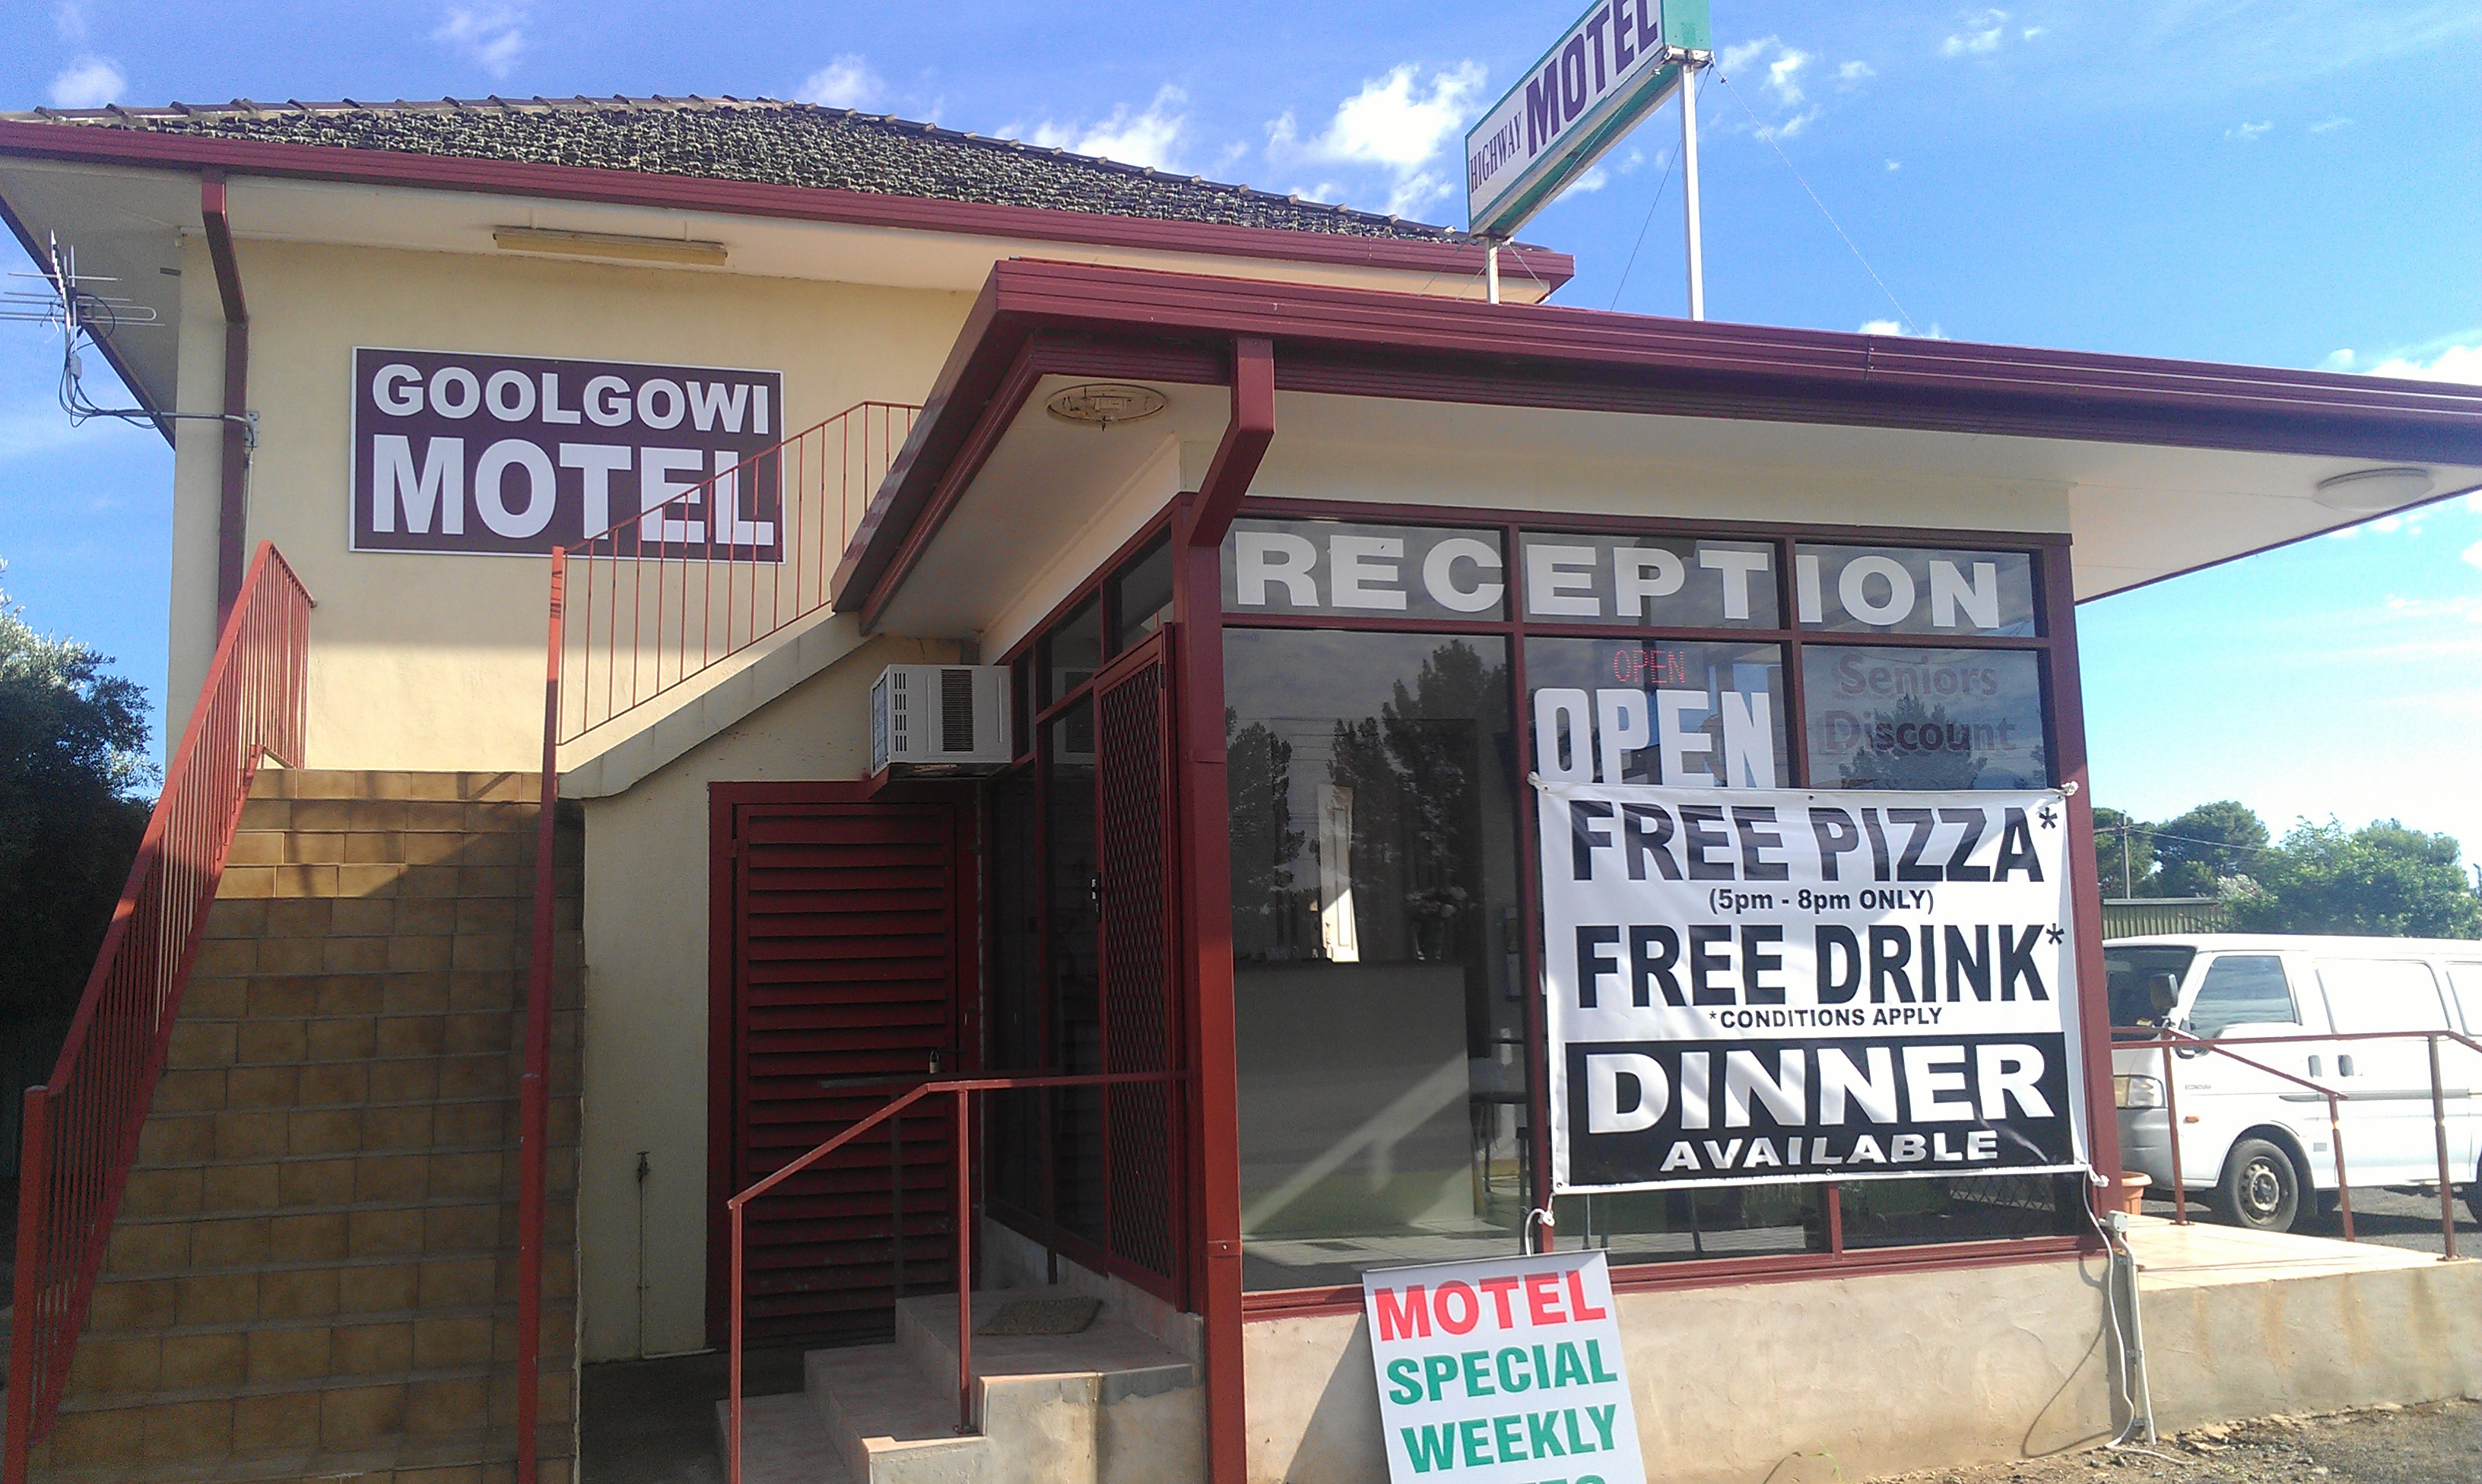 Royal Mail Hotel Goolgowi - Taree Accommodation